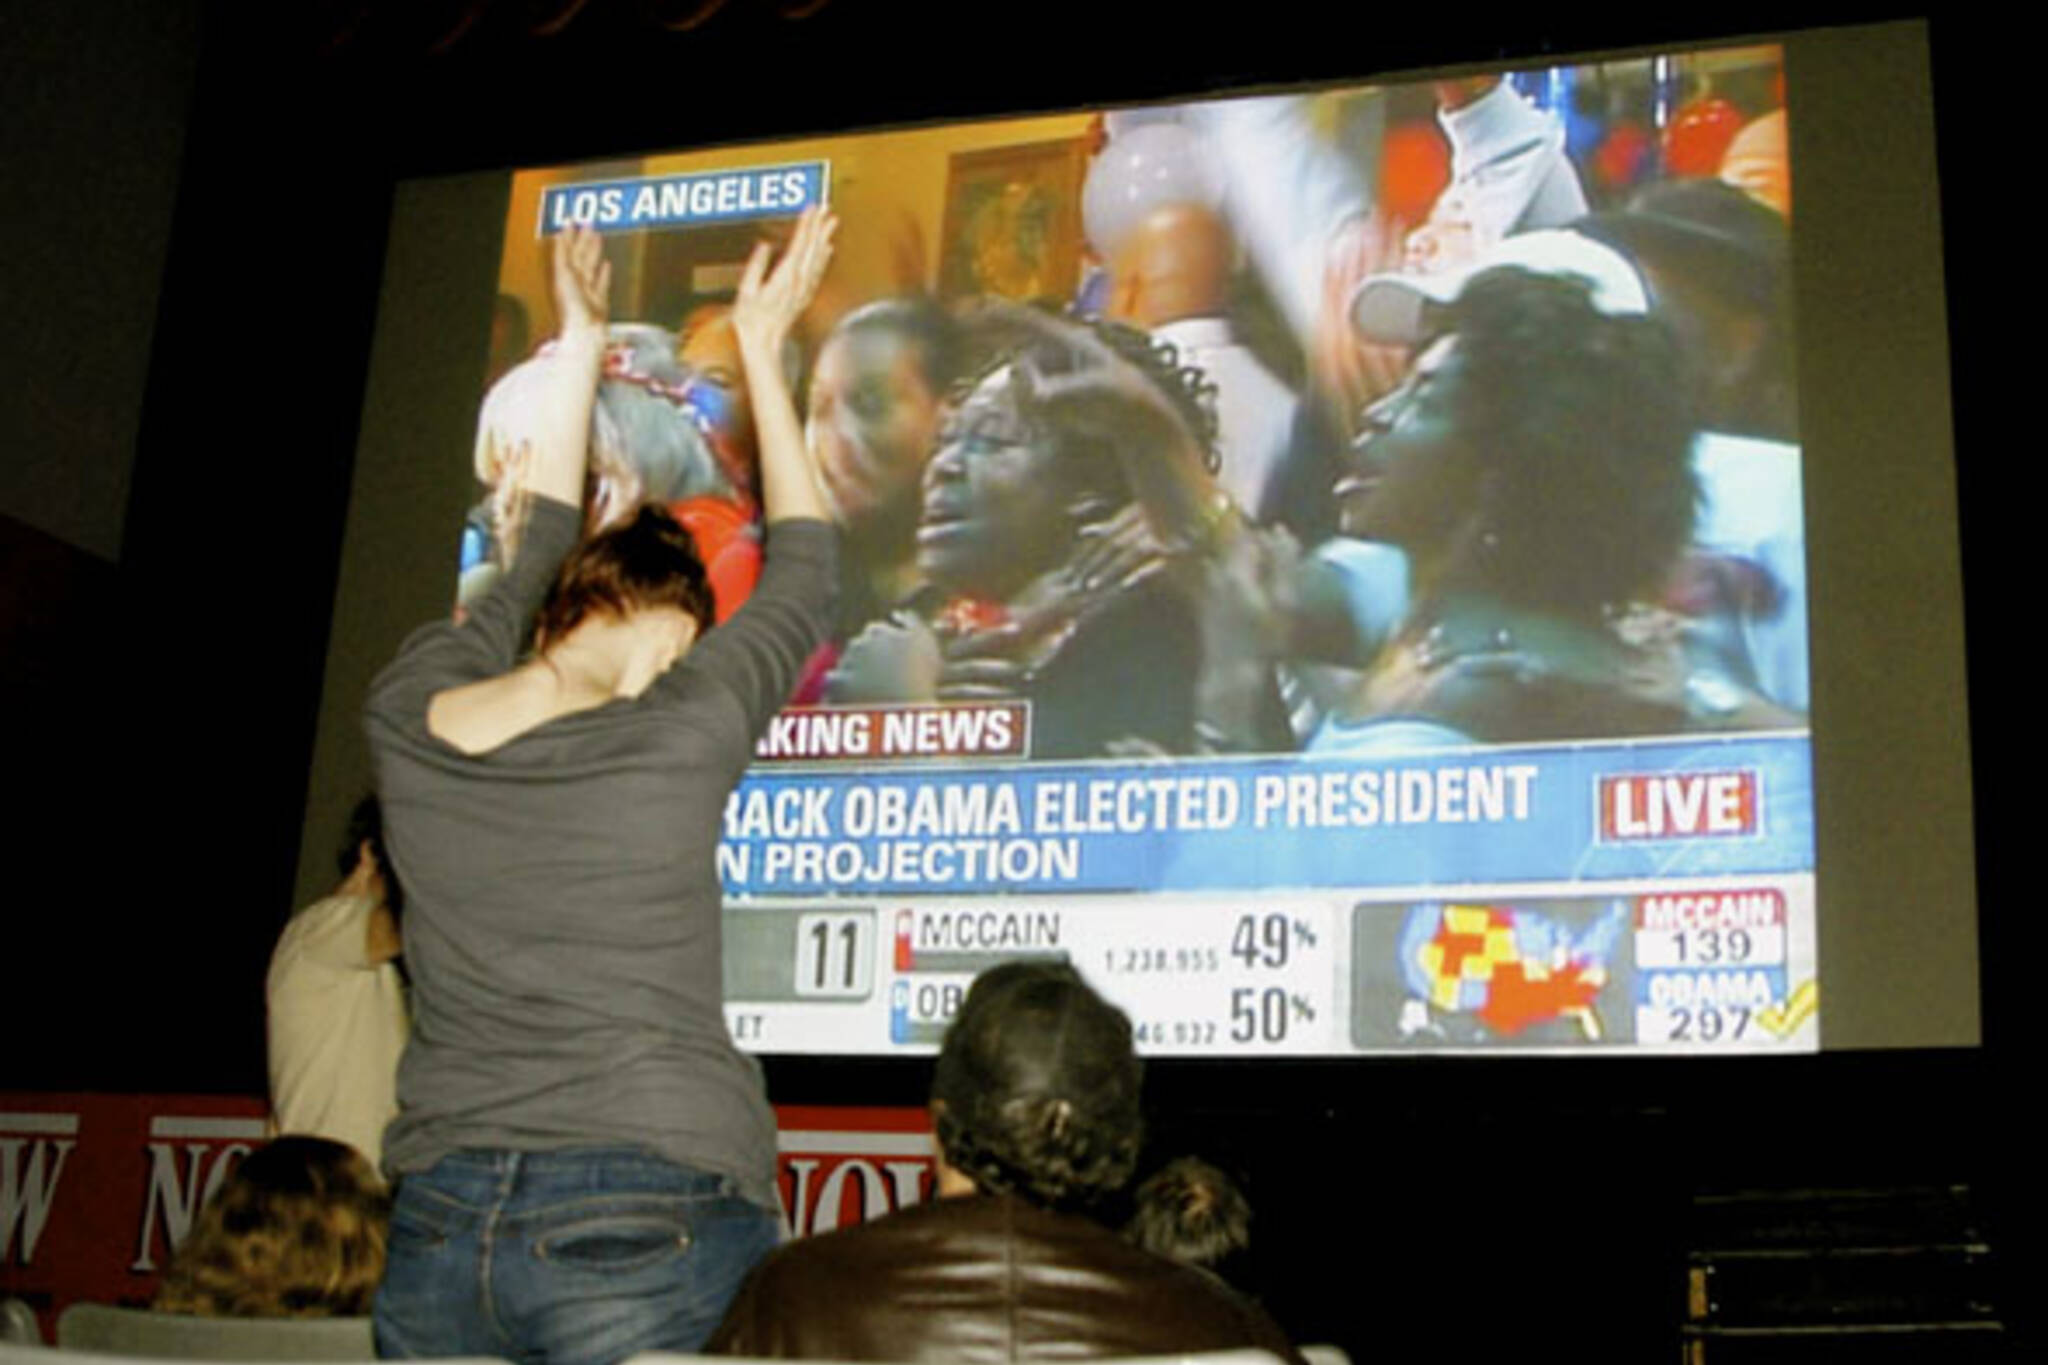 America Votes Obama party at The Bloor Cinema in Toronto